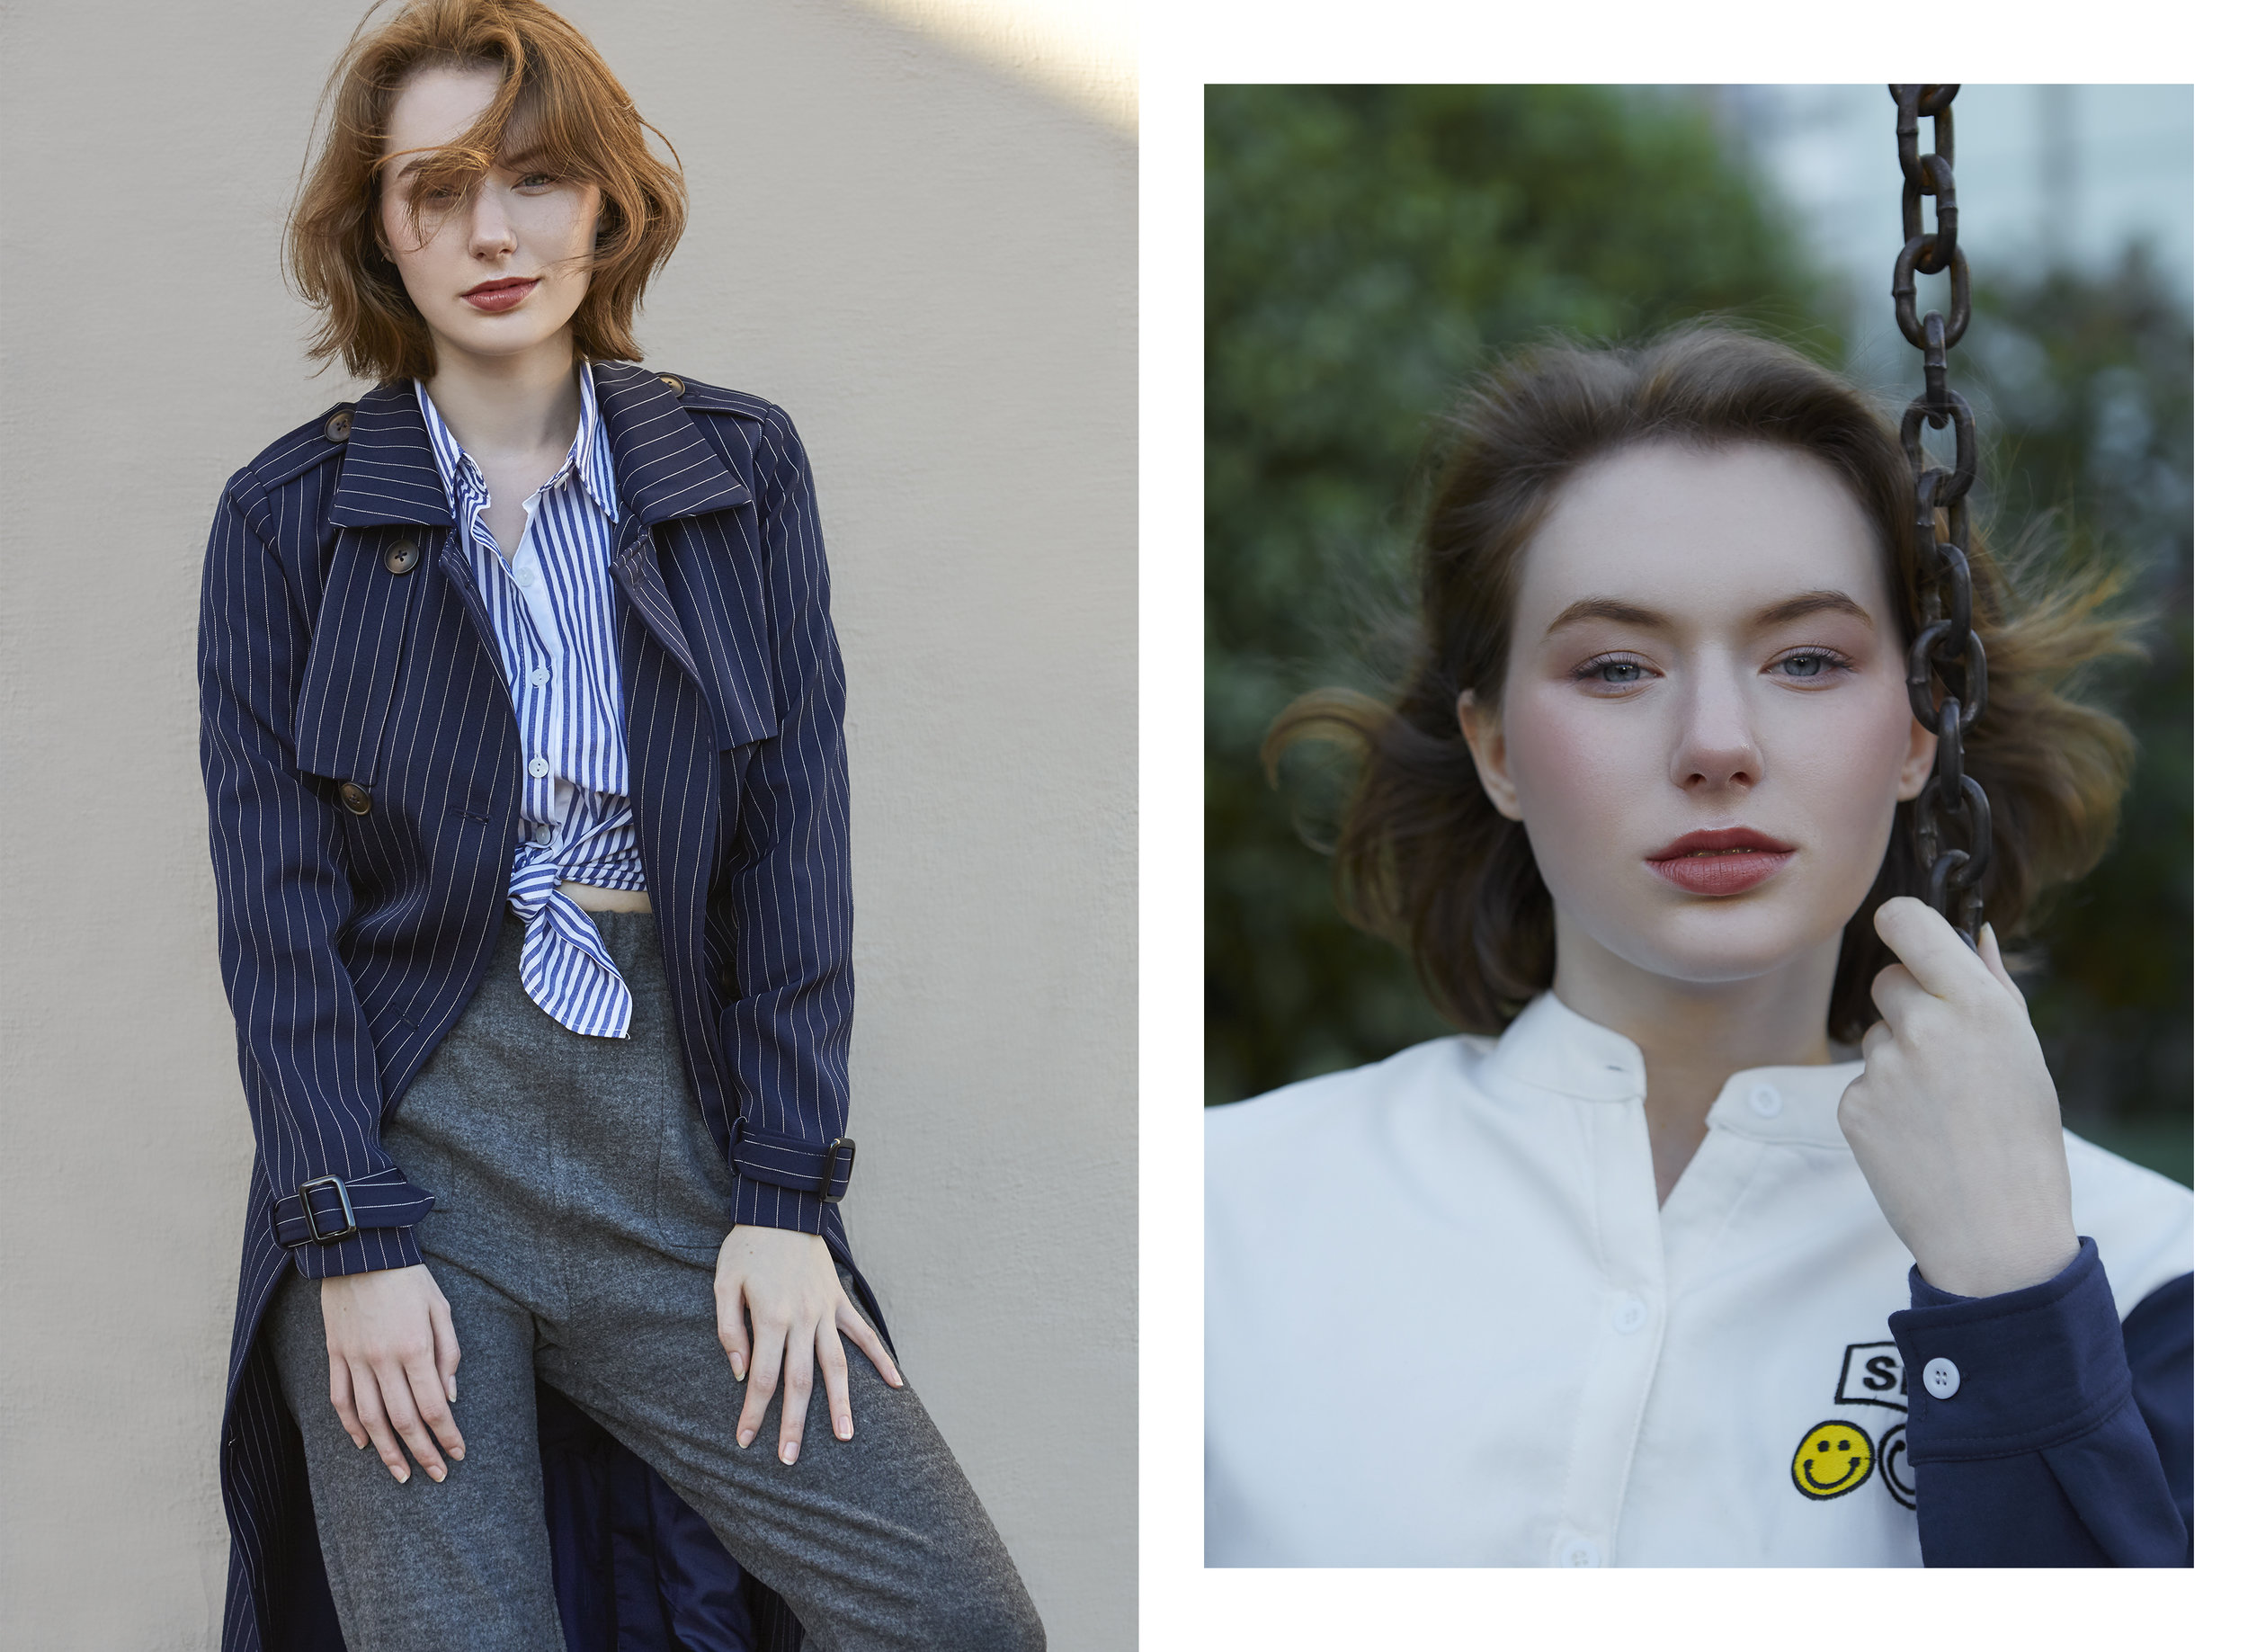 Photography by Claire Li, garments by 1208 Studio